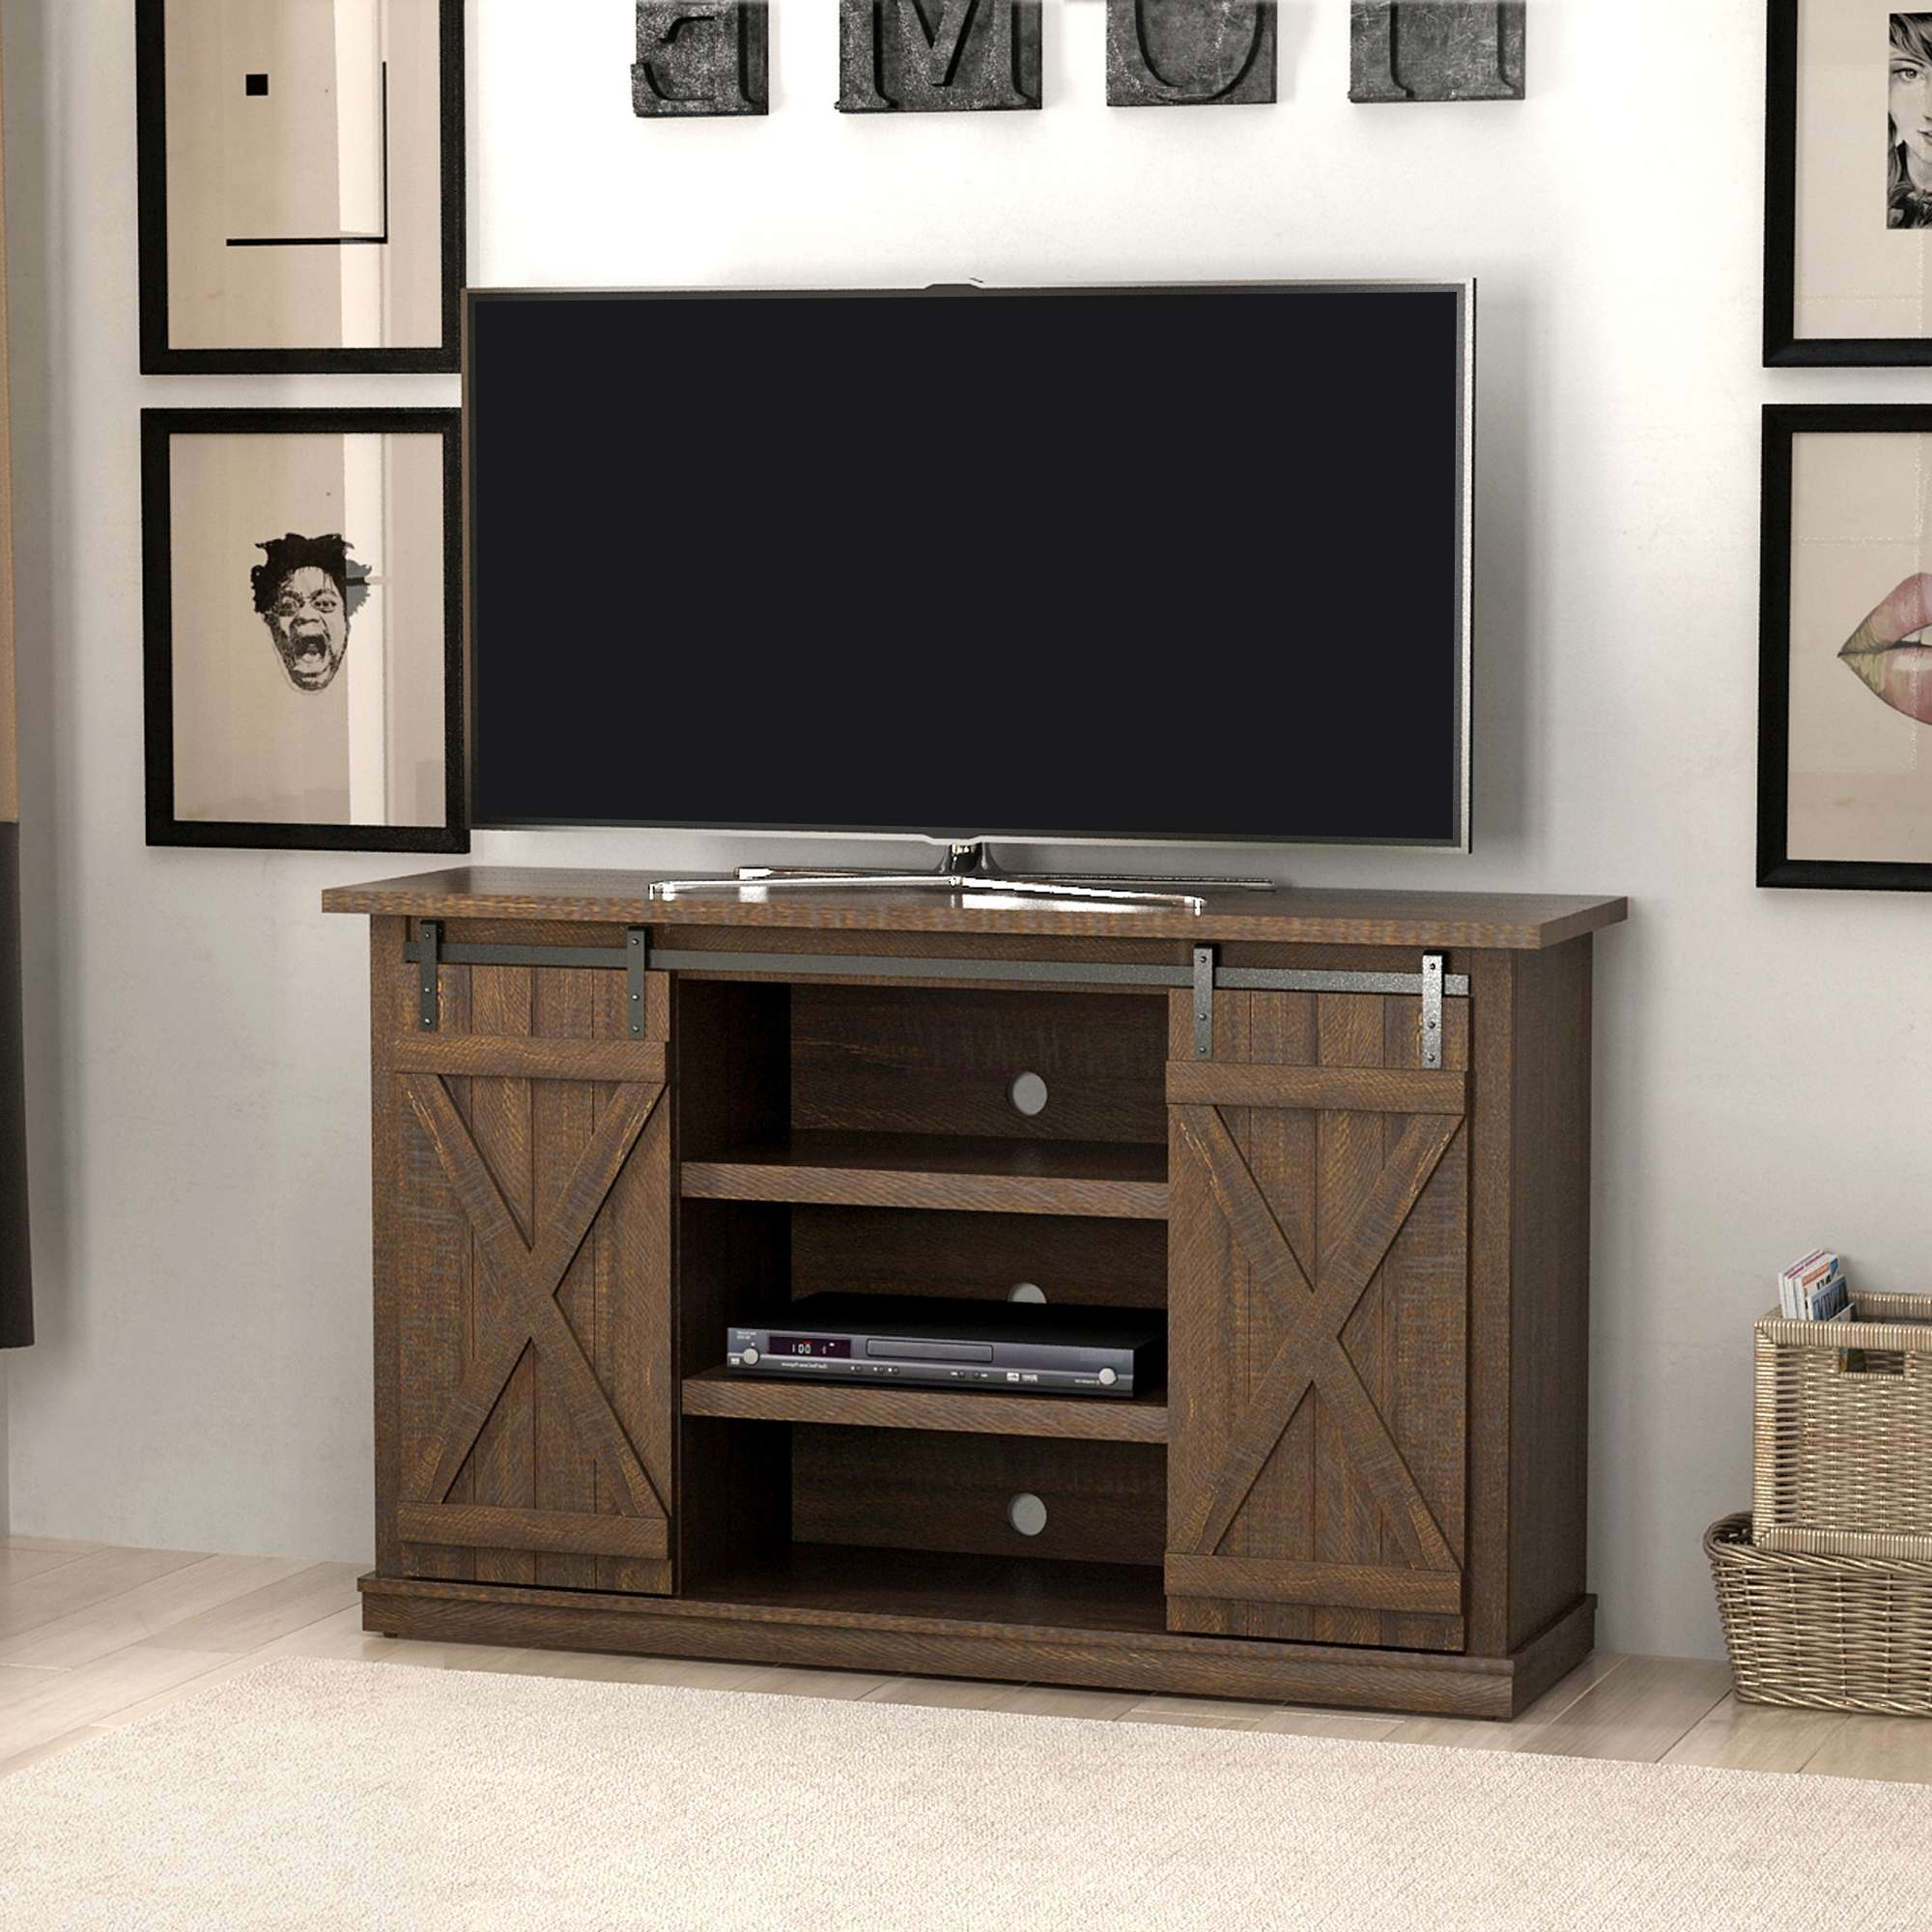 Tv Stands – Walmart Pertaining To Cheap Tall Tv Stands For Flat Screens (View 2 of 20)